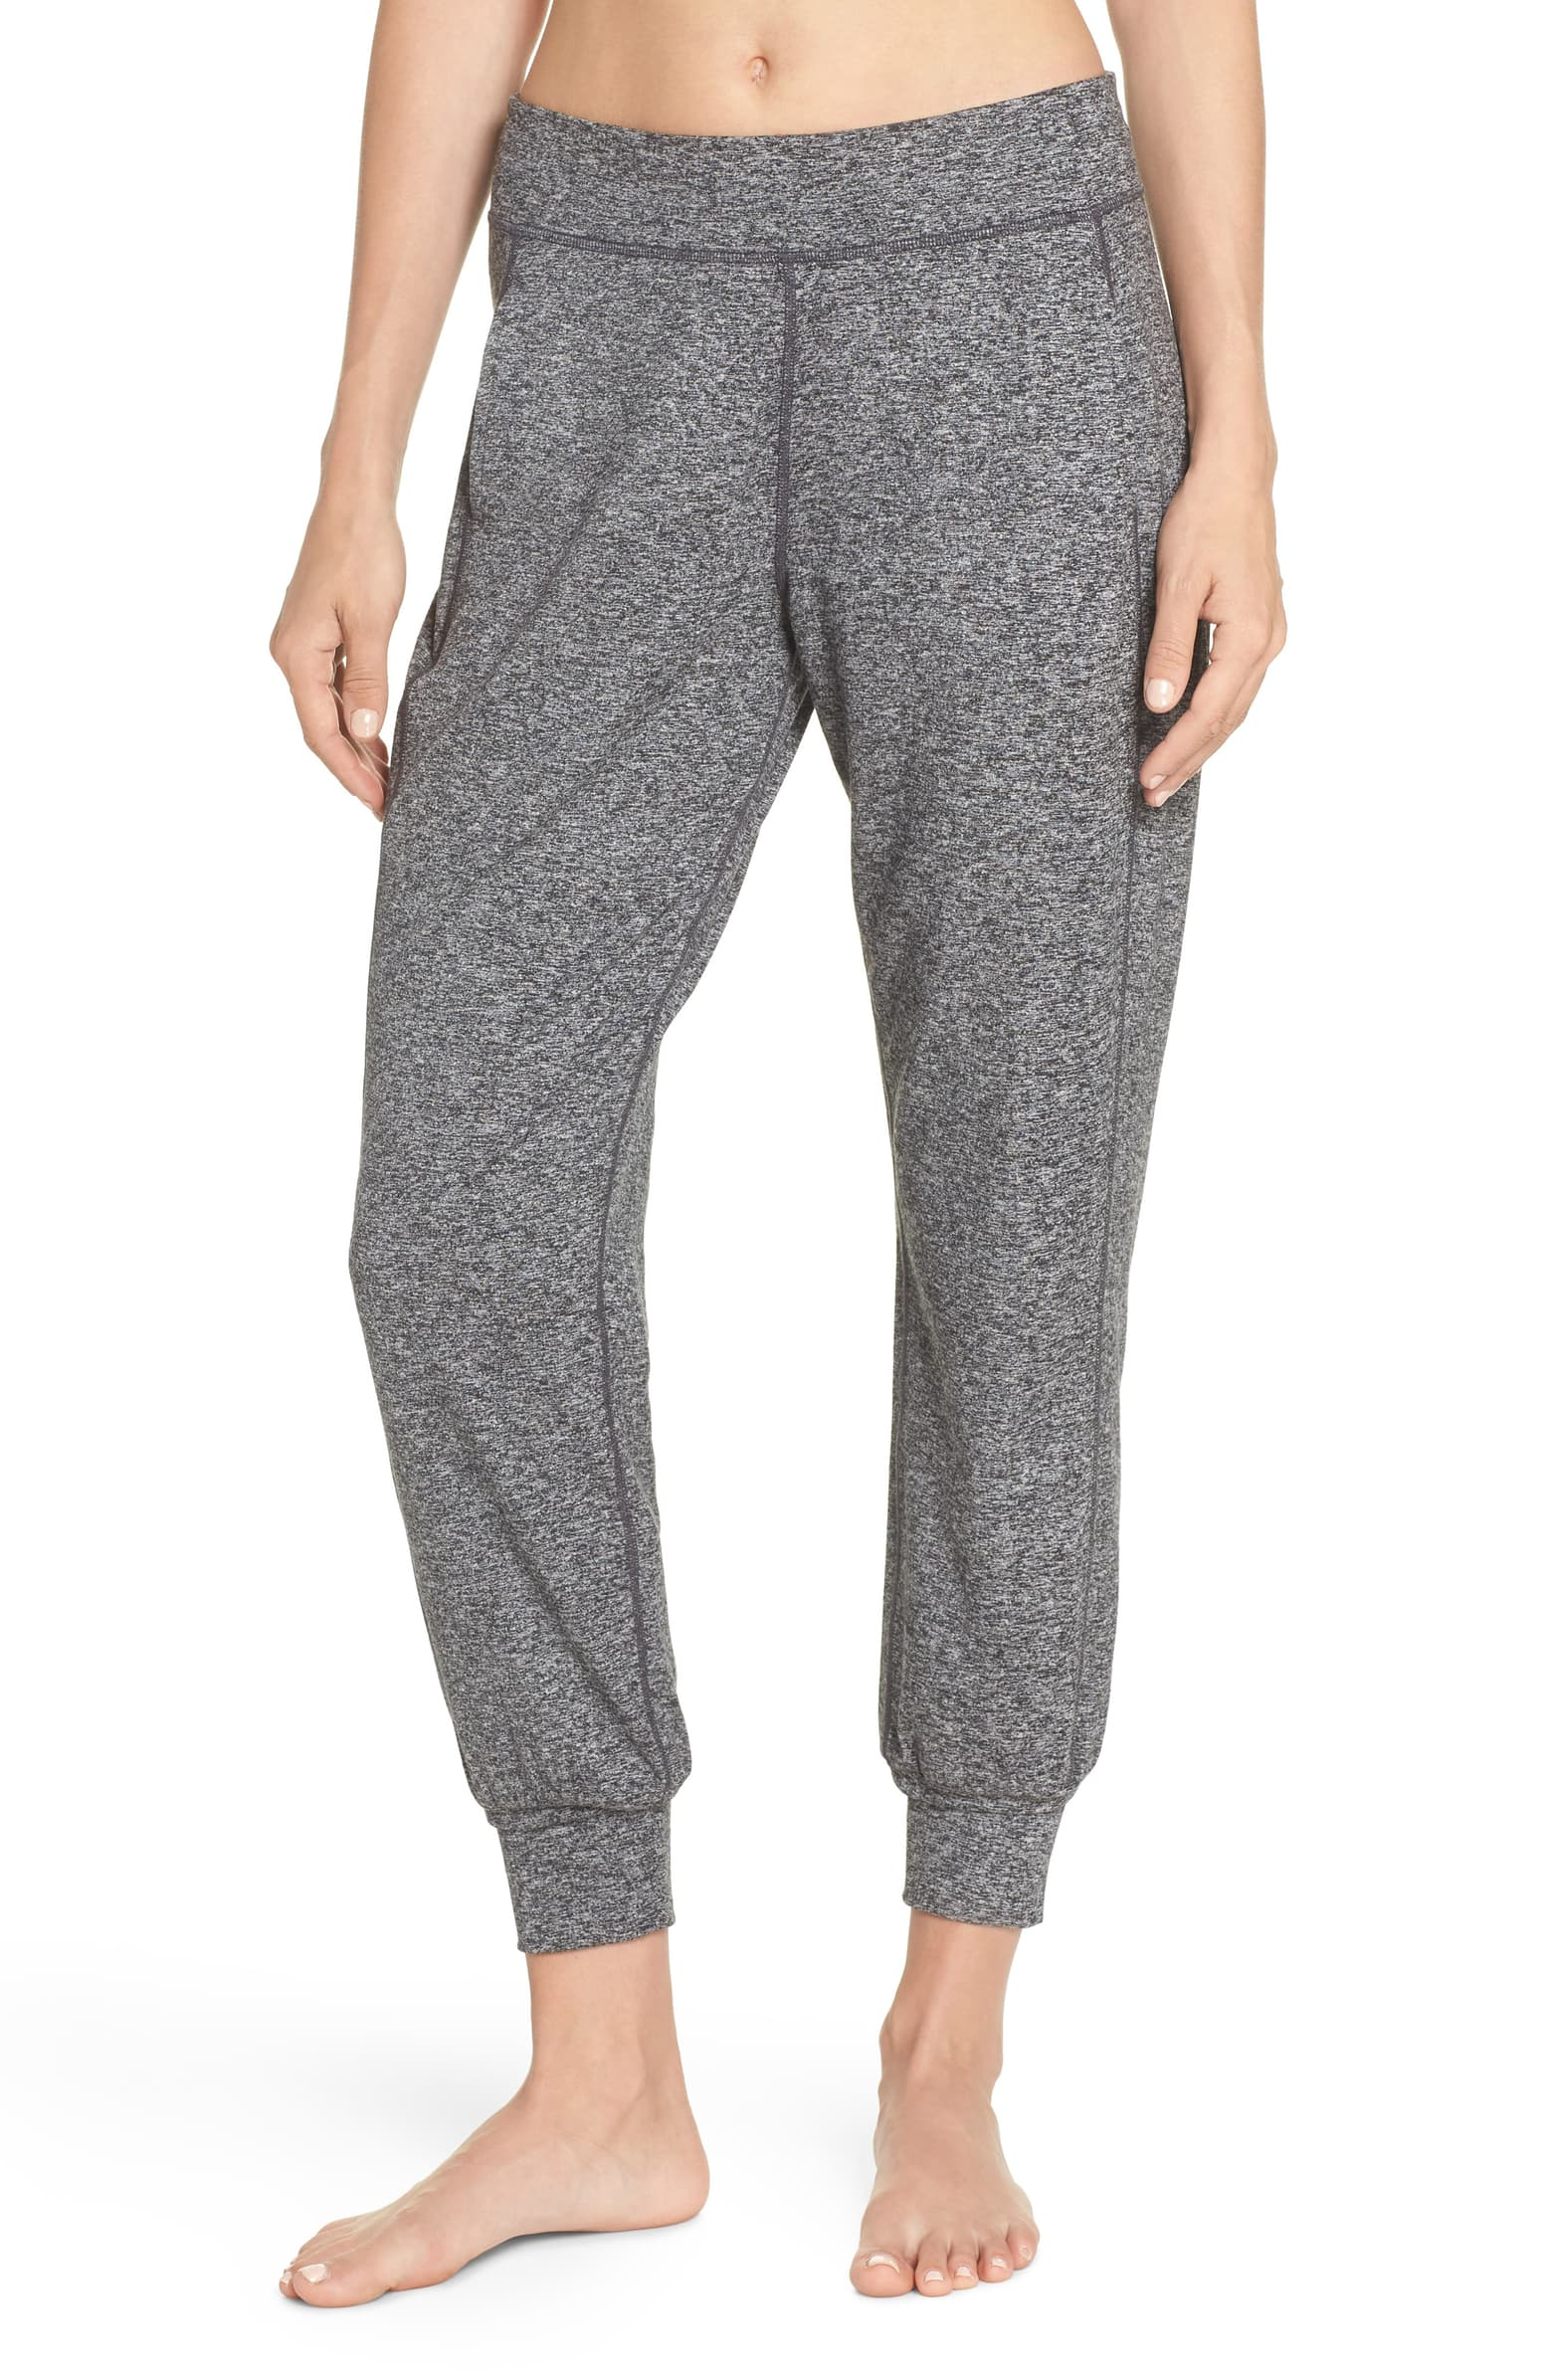 garudasana yoga trousers